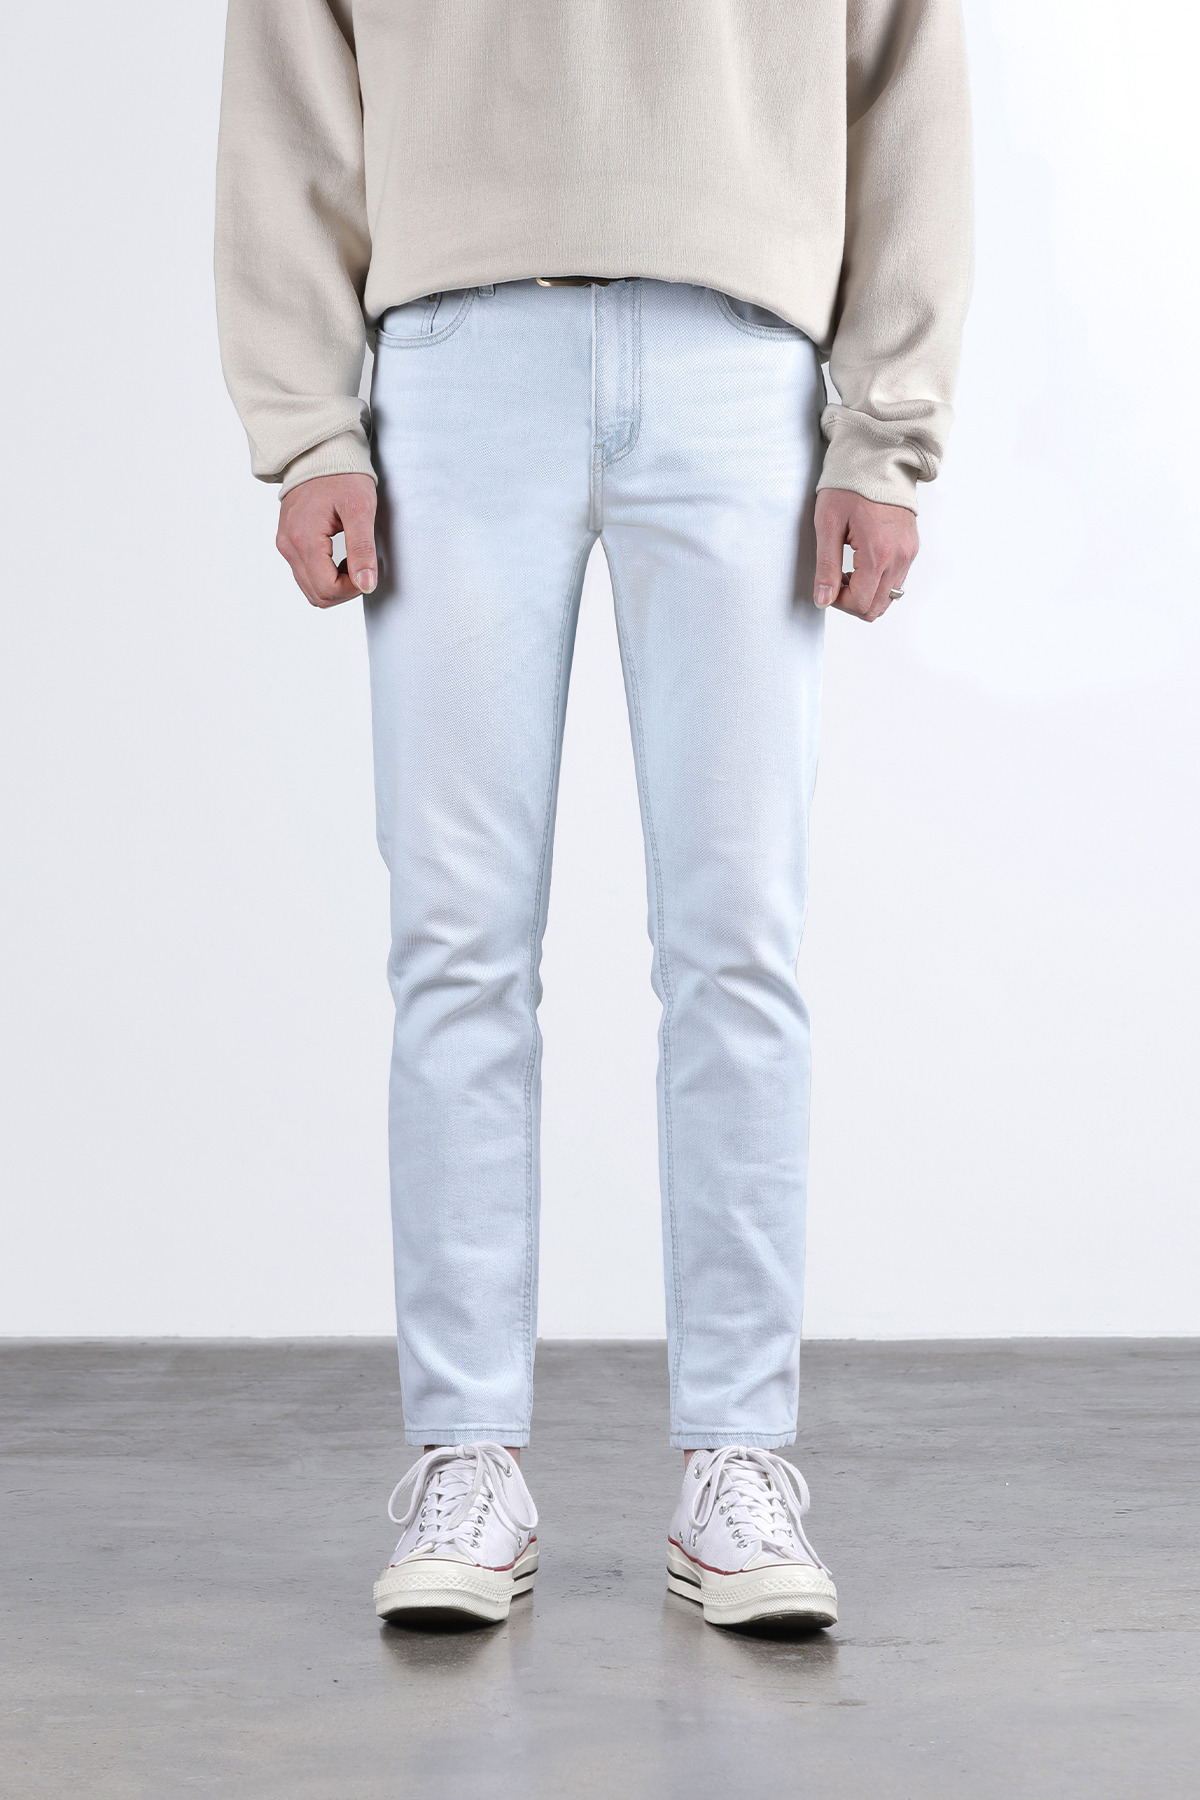 페이탈리즘 #0207 refined ice slim crop jeans